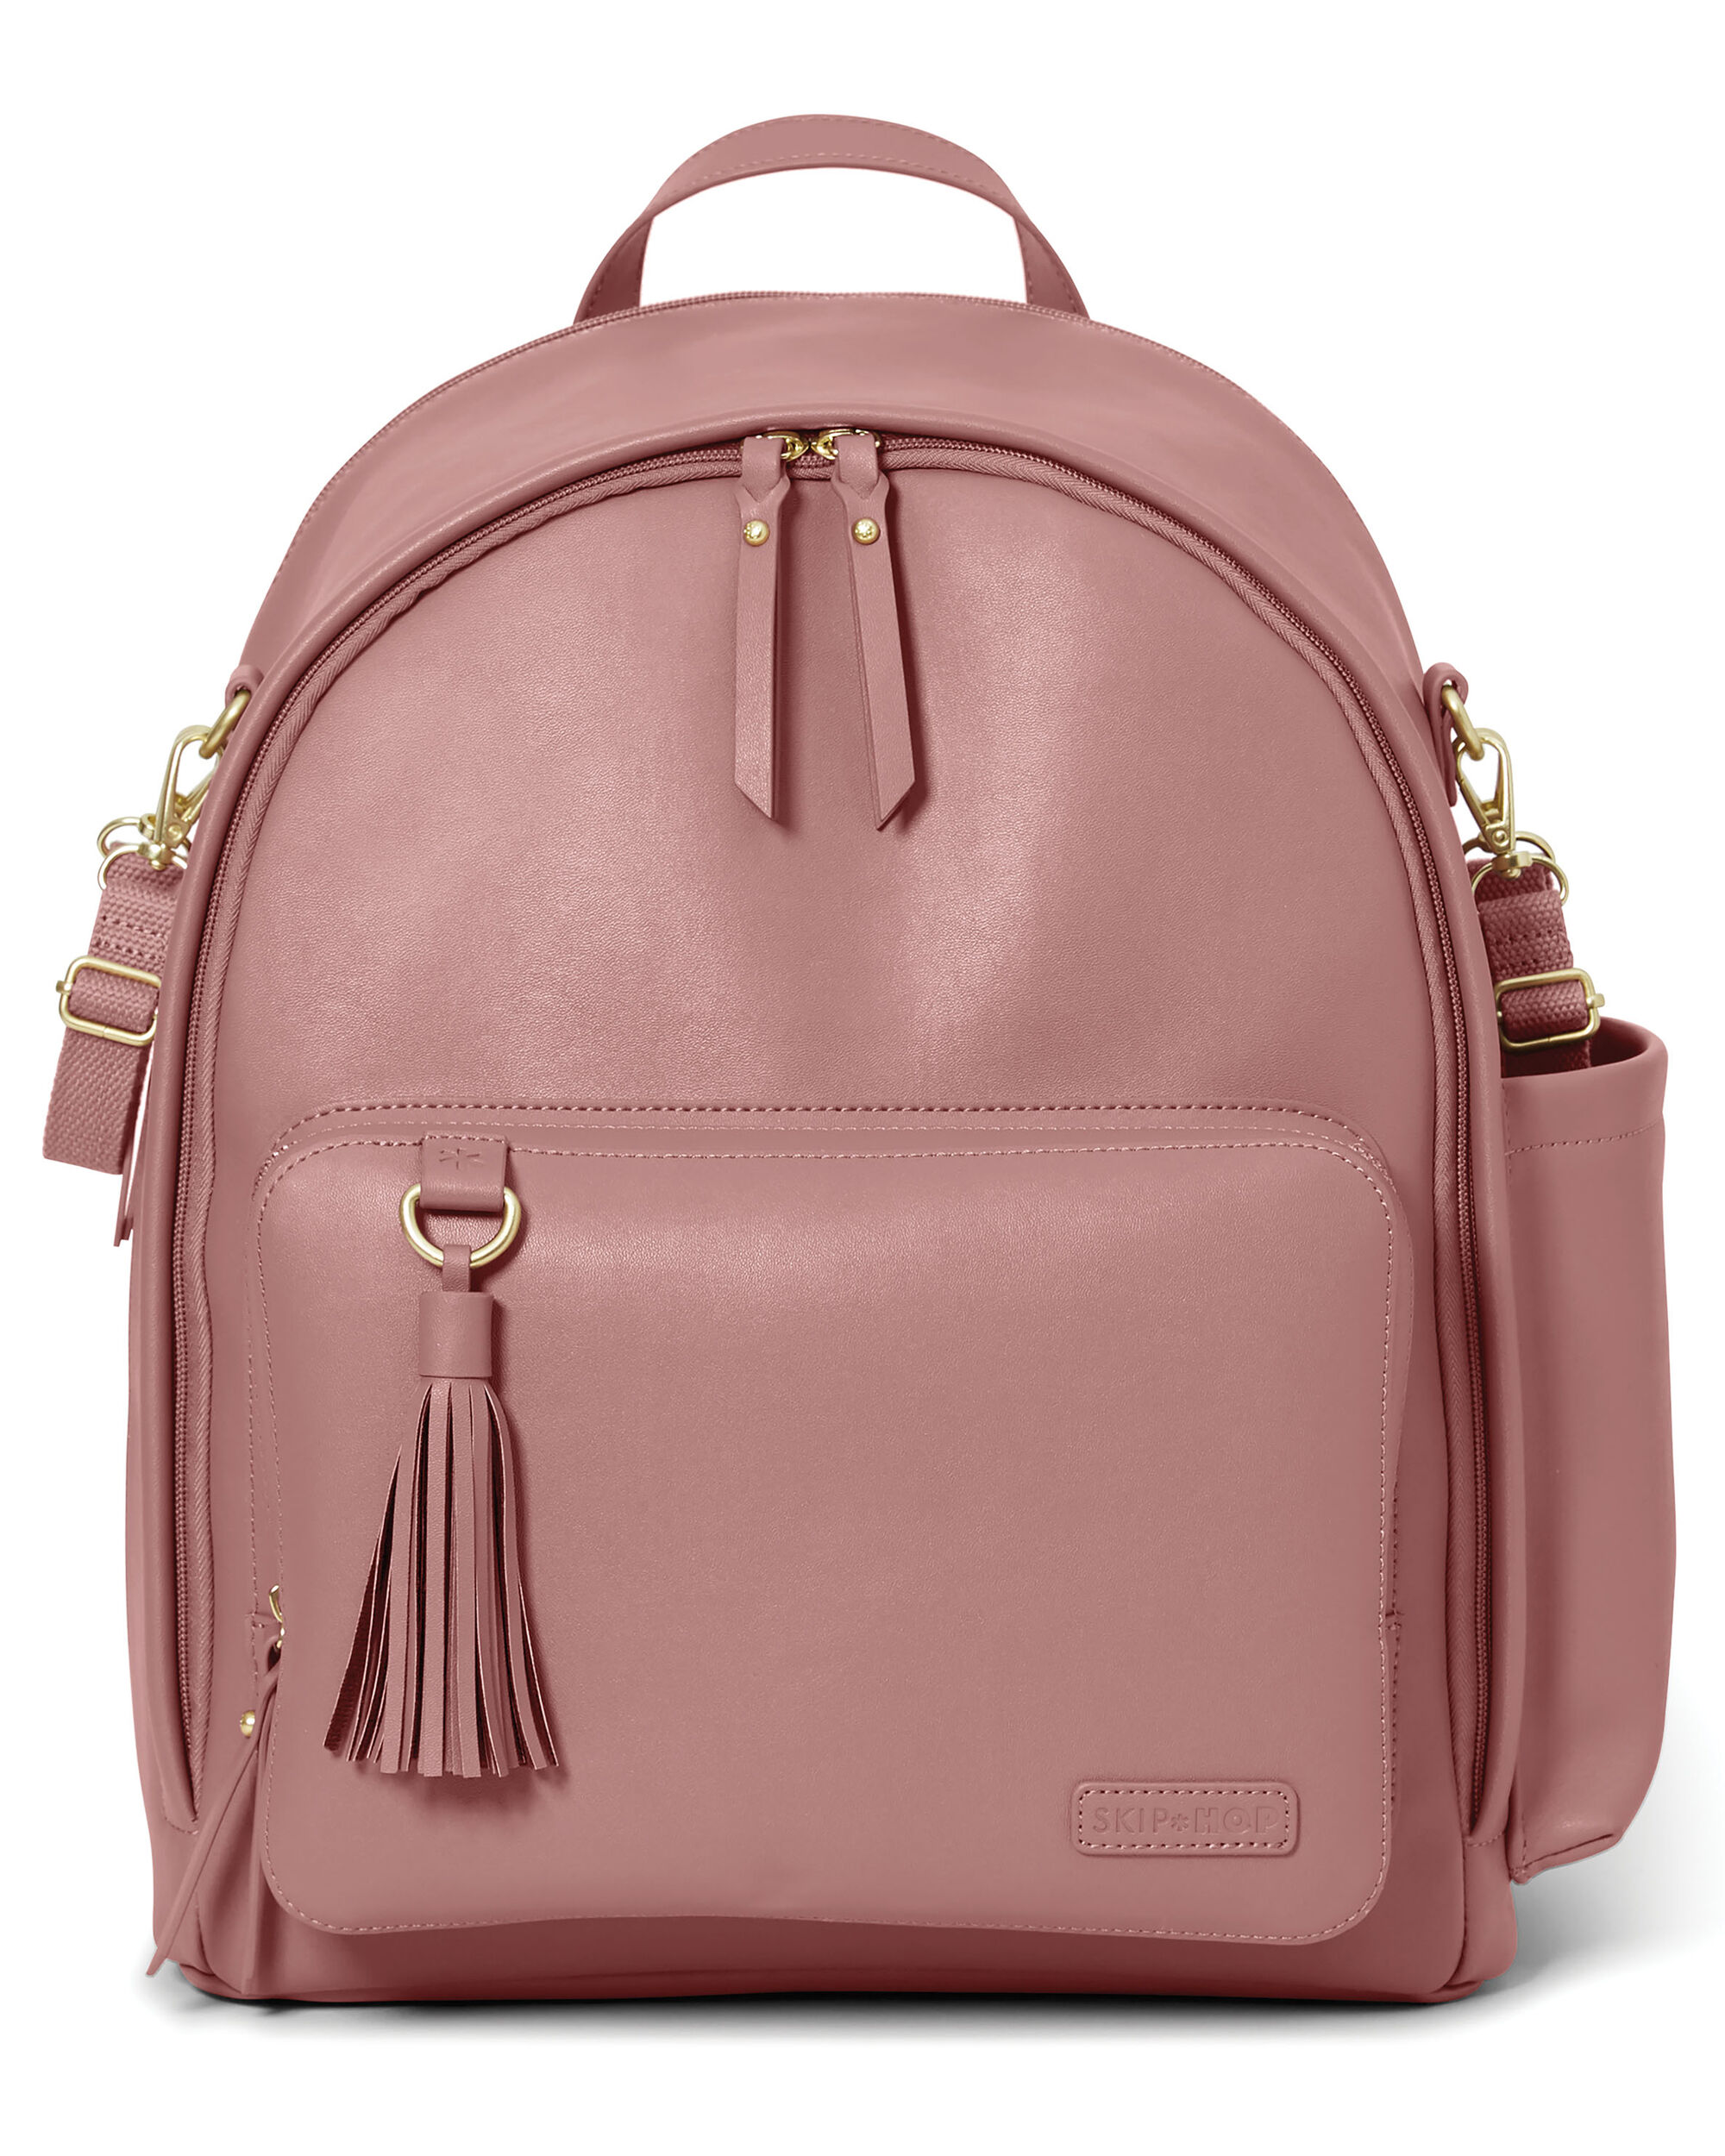 Carters Greenwich Simply Chic Backpack